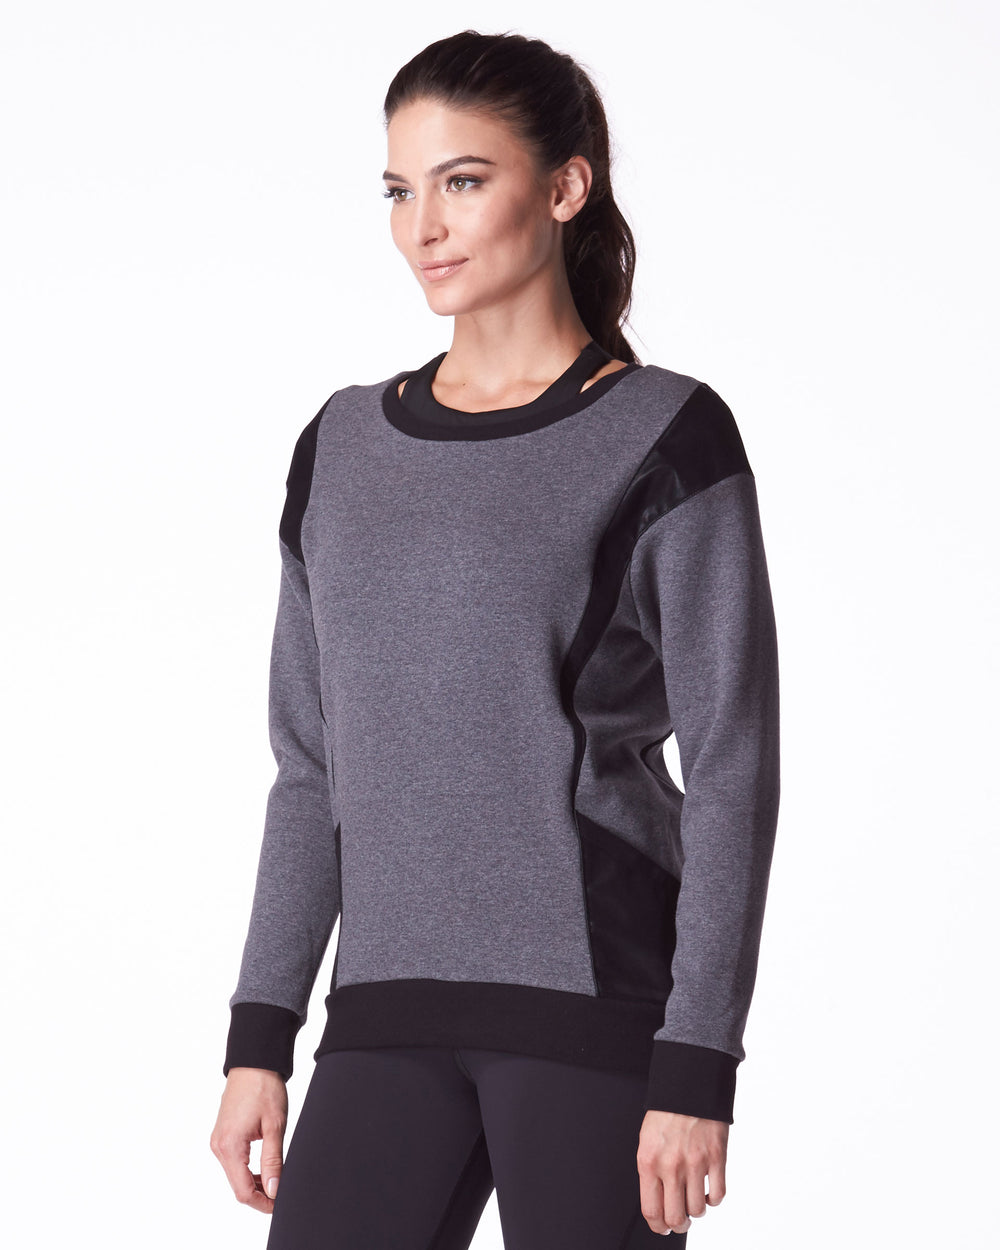 Blade Sweatshirt - Charcoal Grey